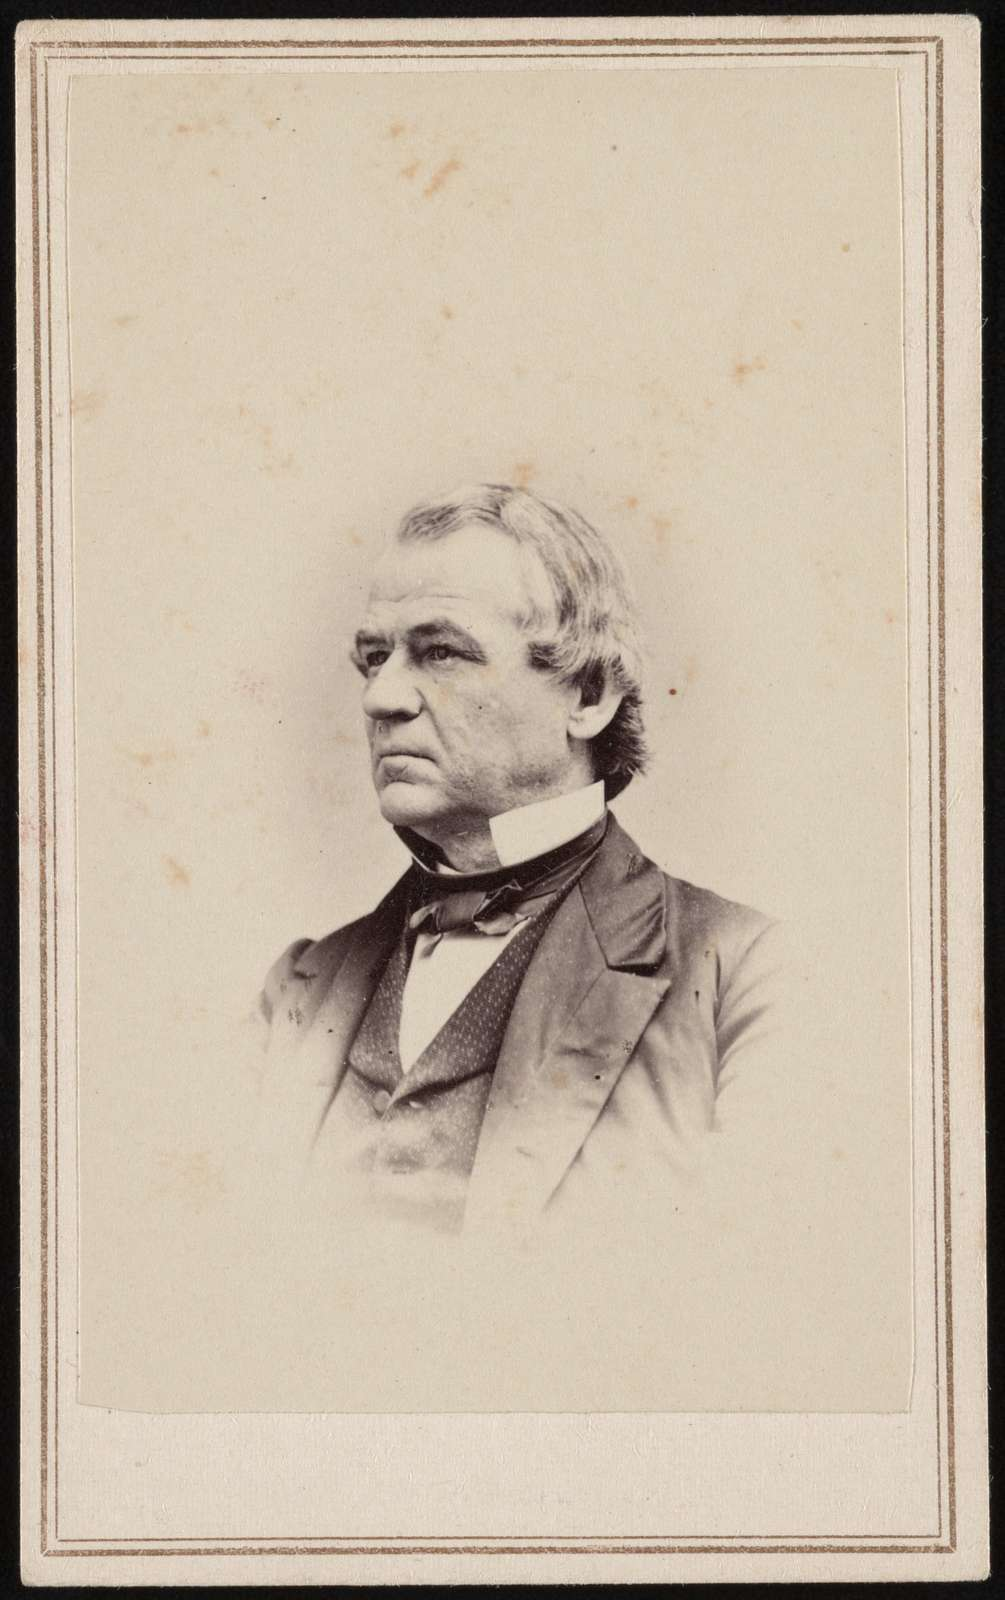 Andrew Johnson, 17th President of the United States and Vice President to Abraham Lincoln